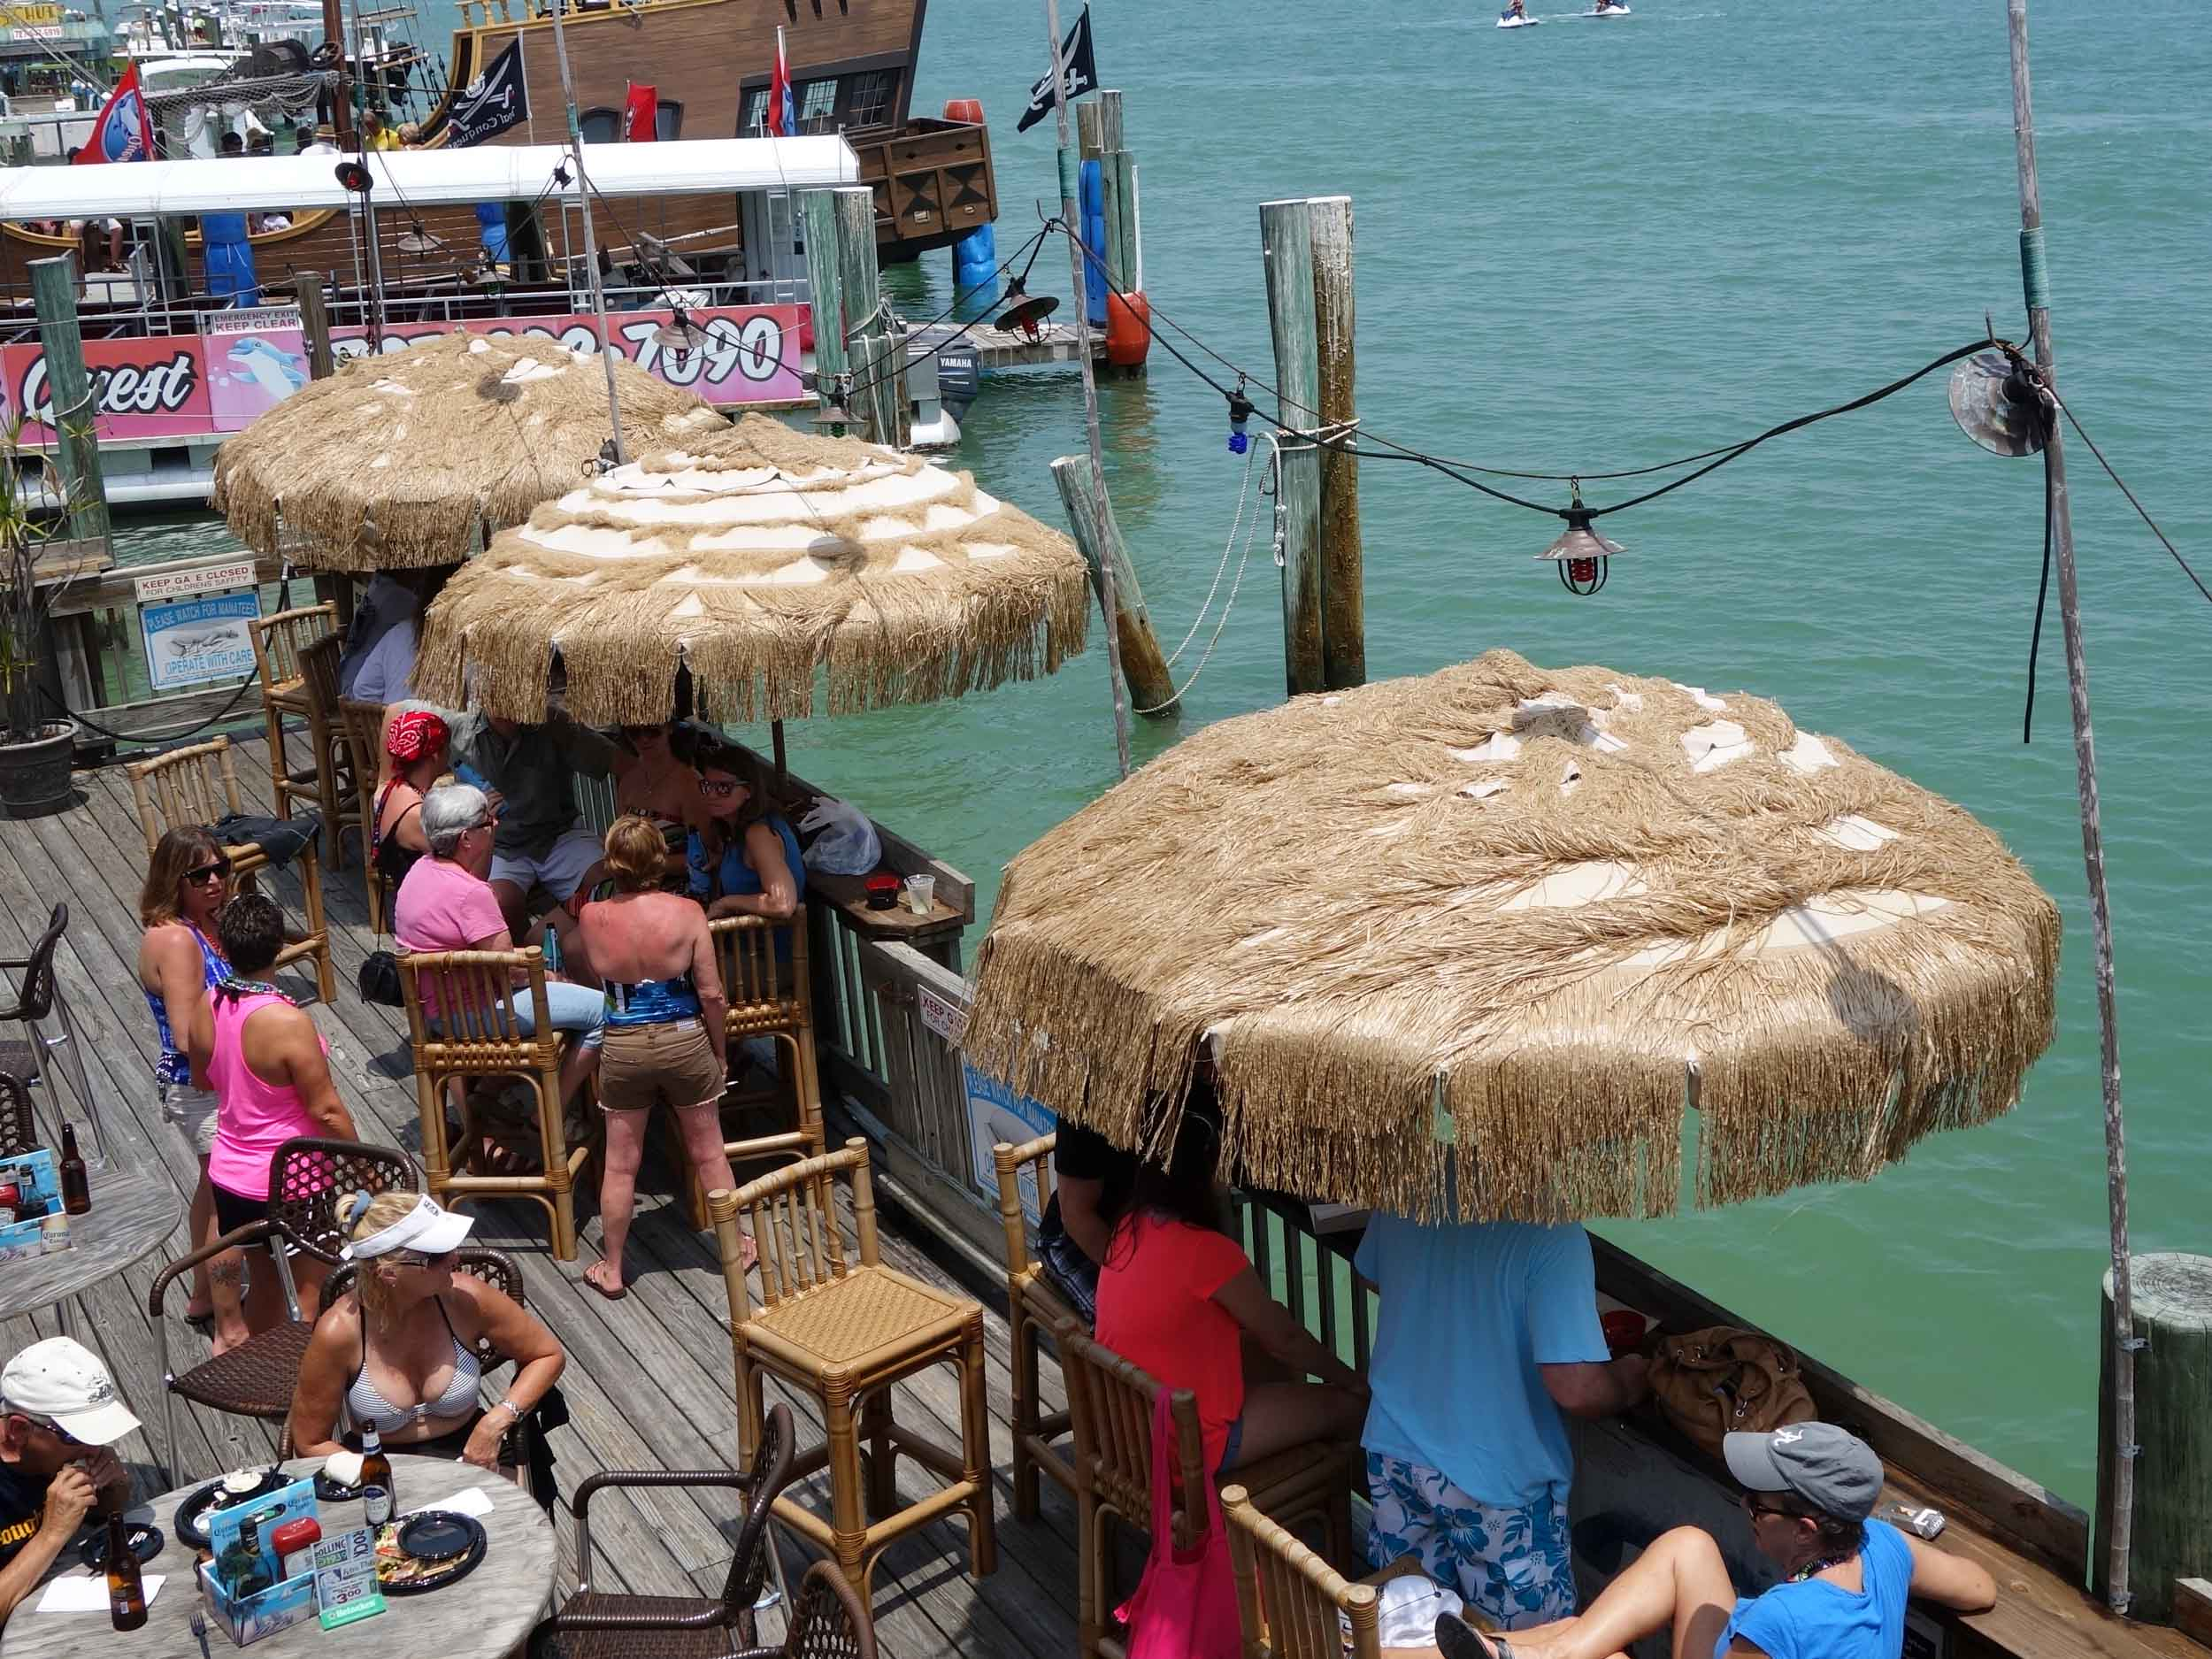 The Hut Bar and Grill Tables with Water View